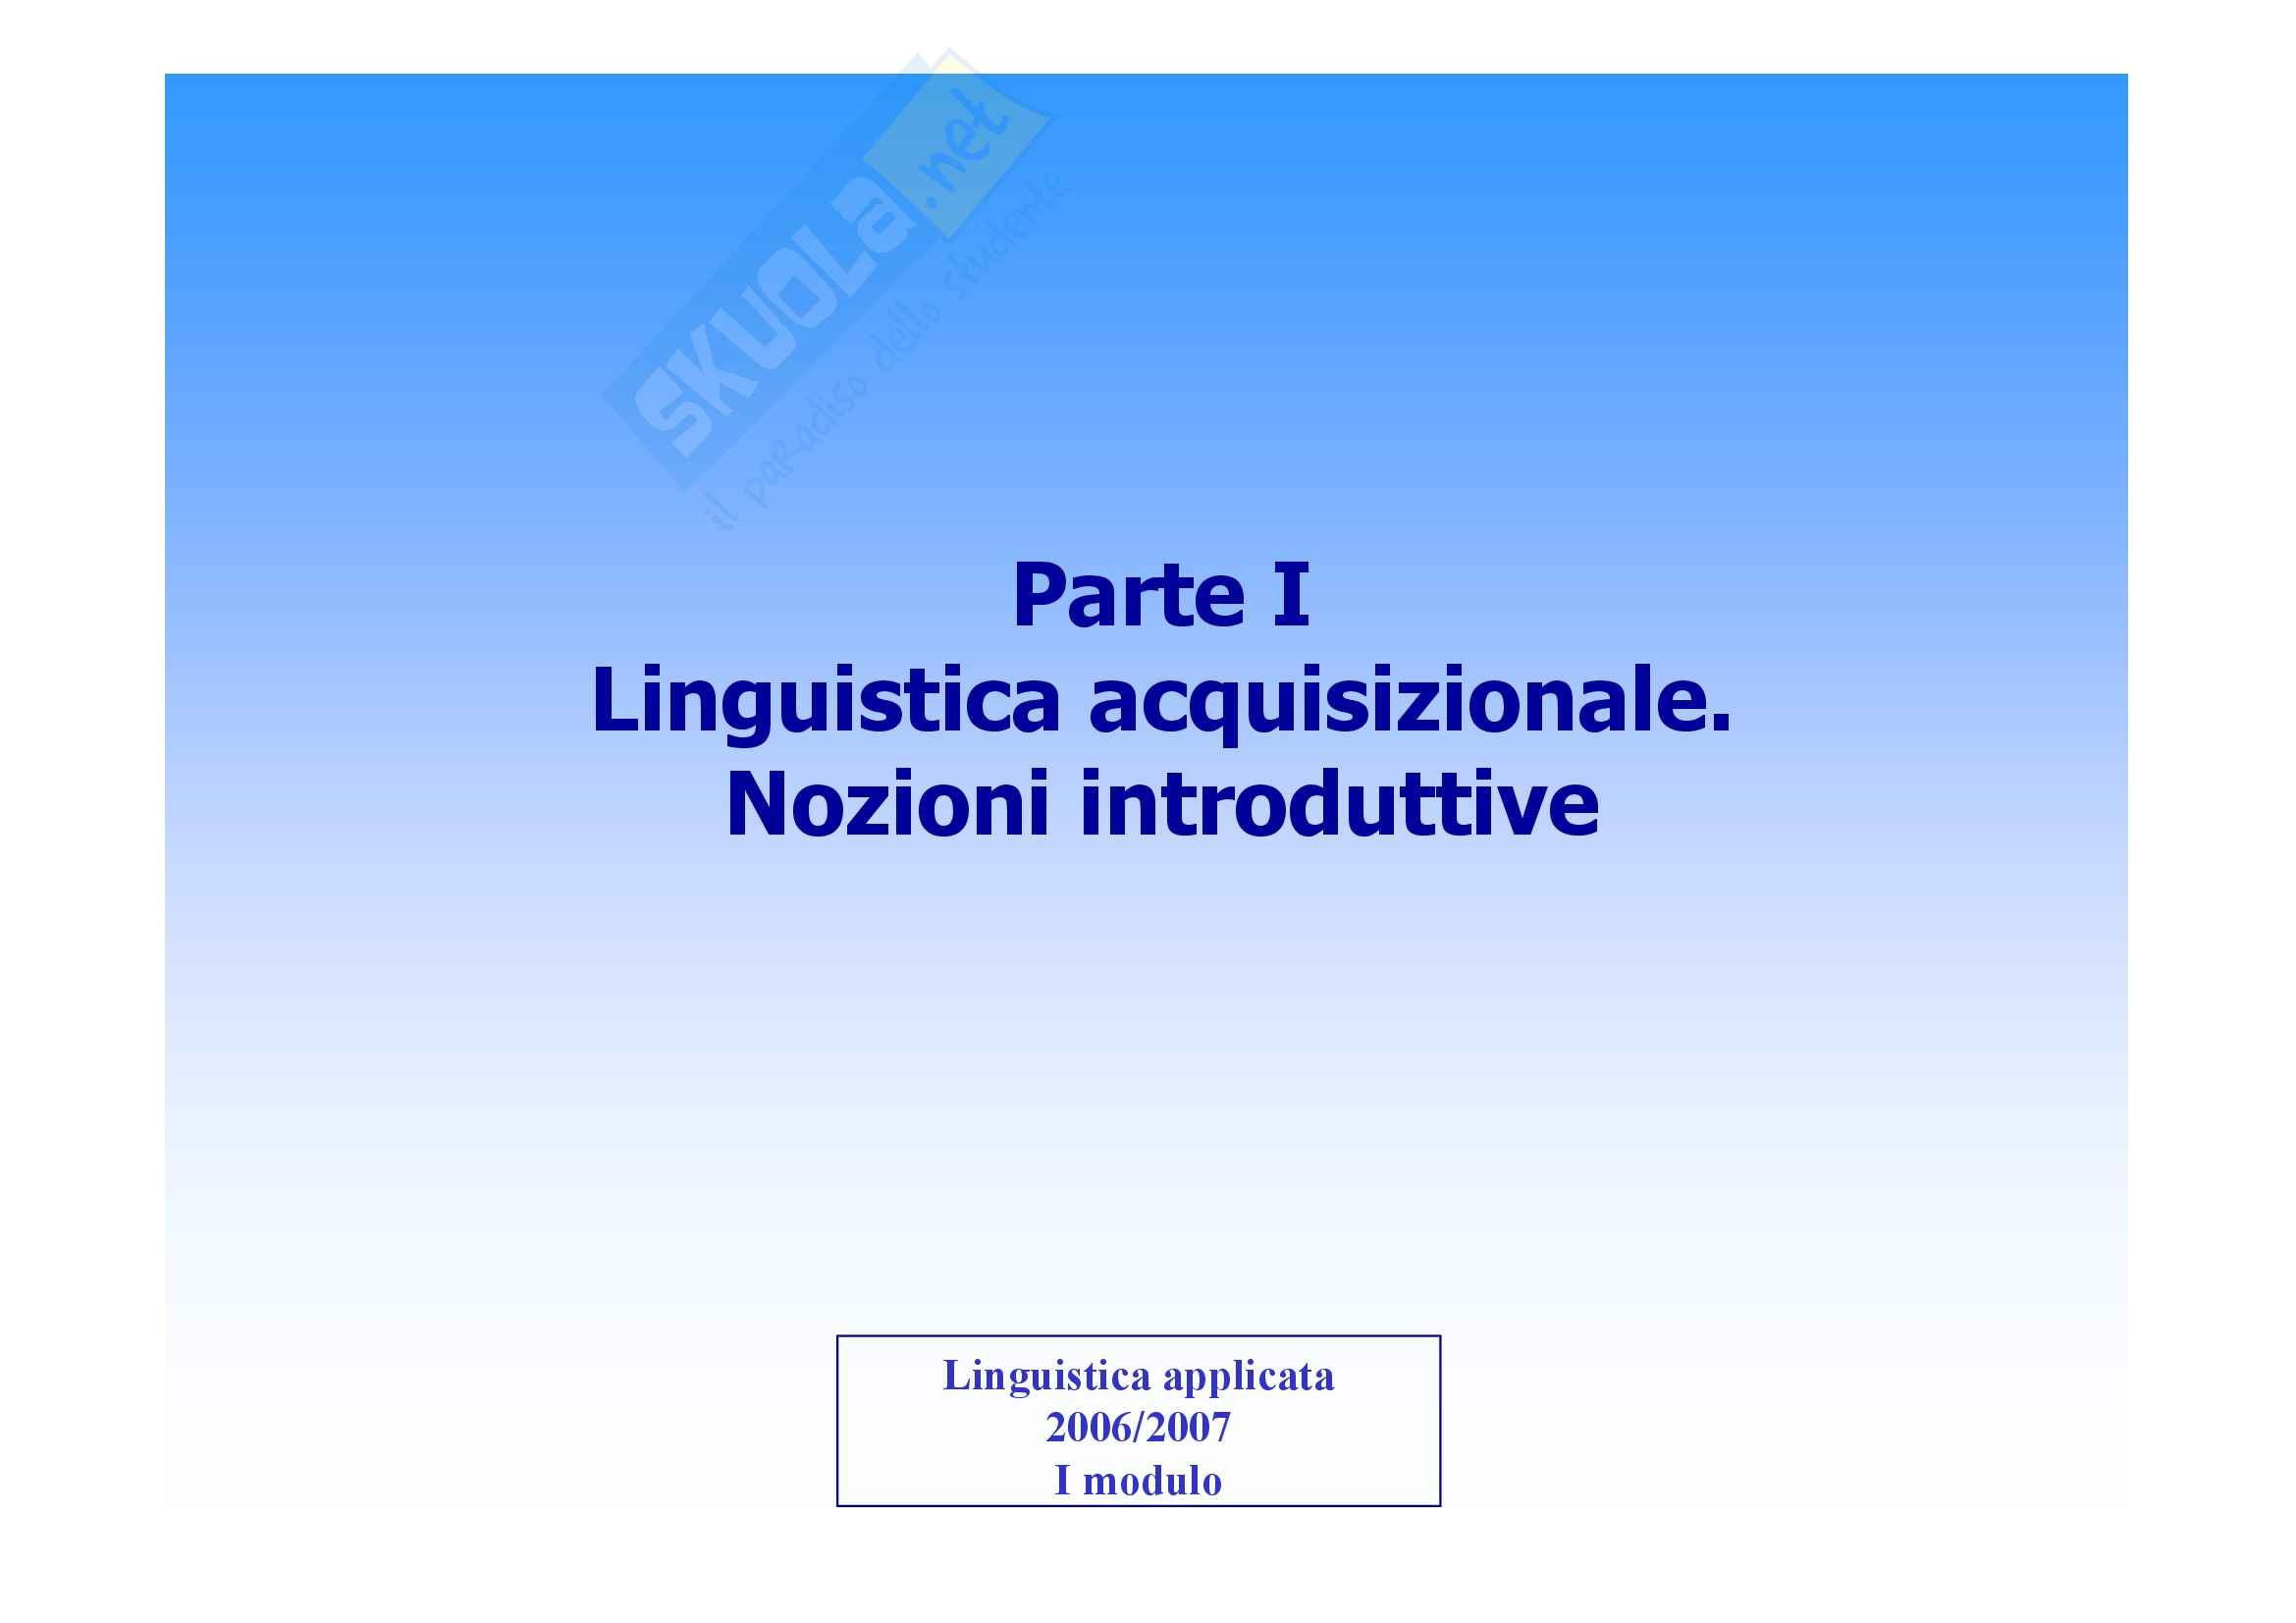 Linguistica applicata - Appunti (prima parte)